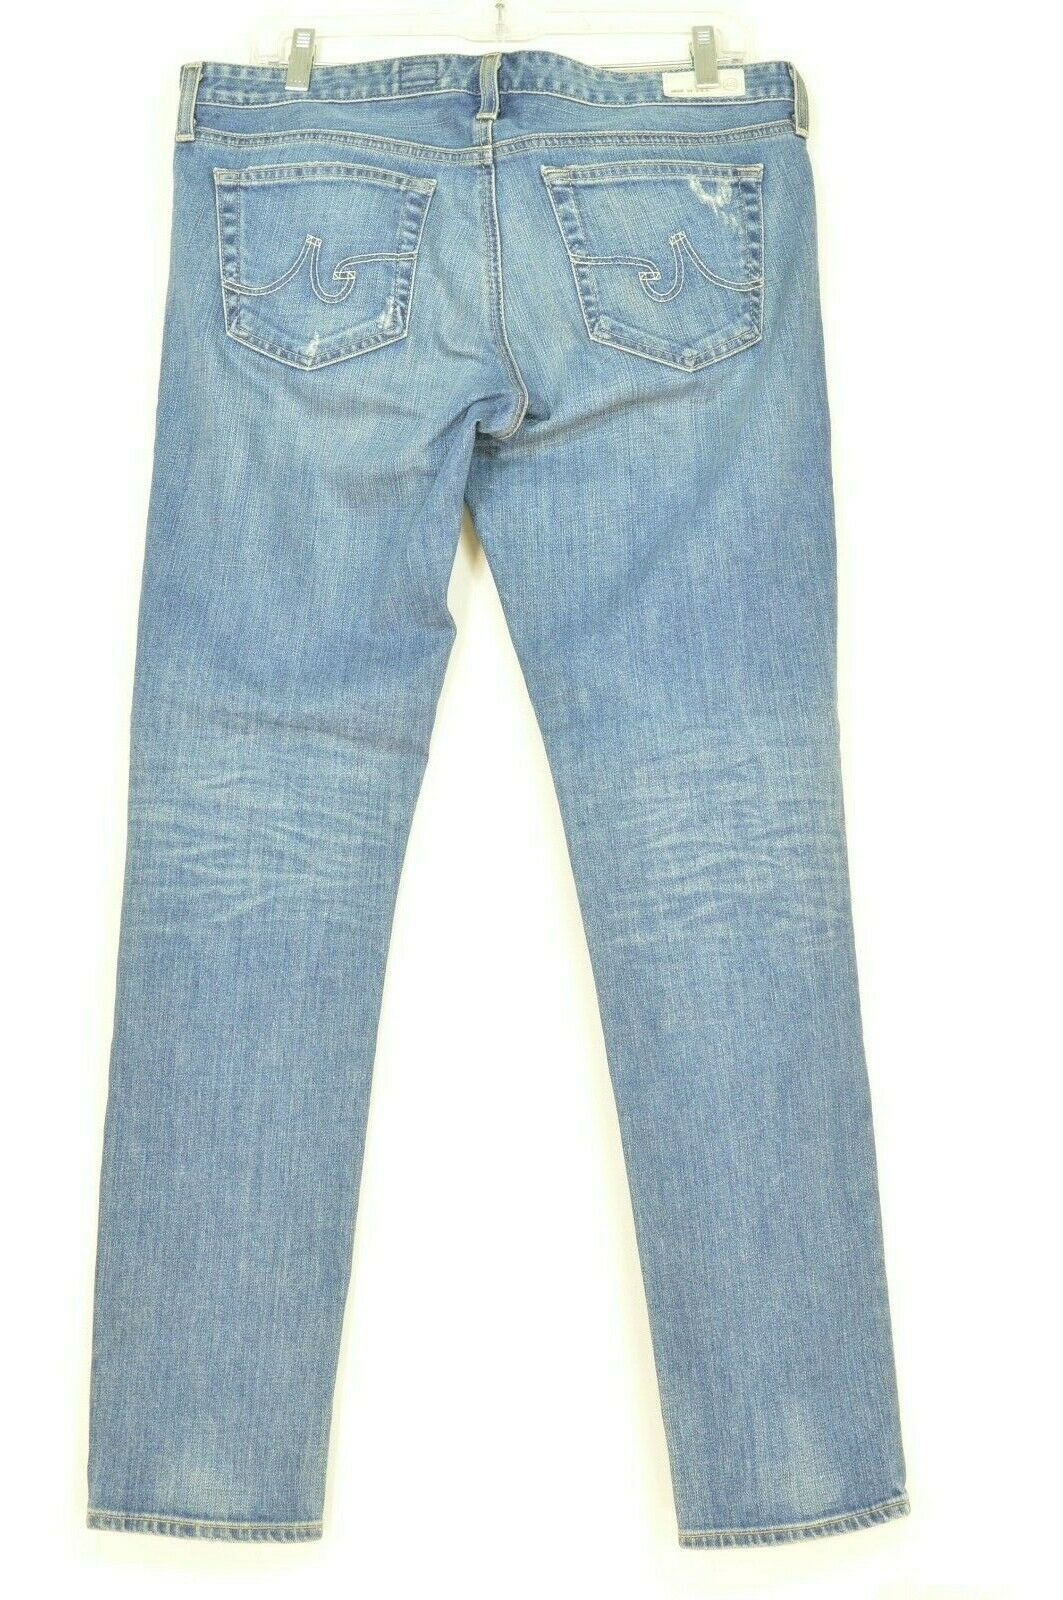 AG Adriano Goldschmied jeans 31 x 31 Stilt cigarette leg 17Y - SVT destroyed USA image 2